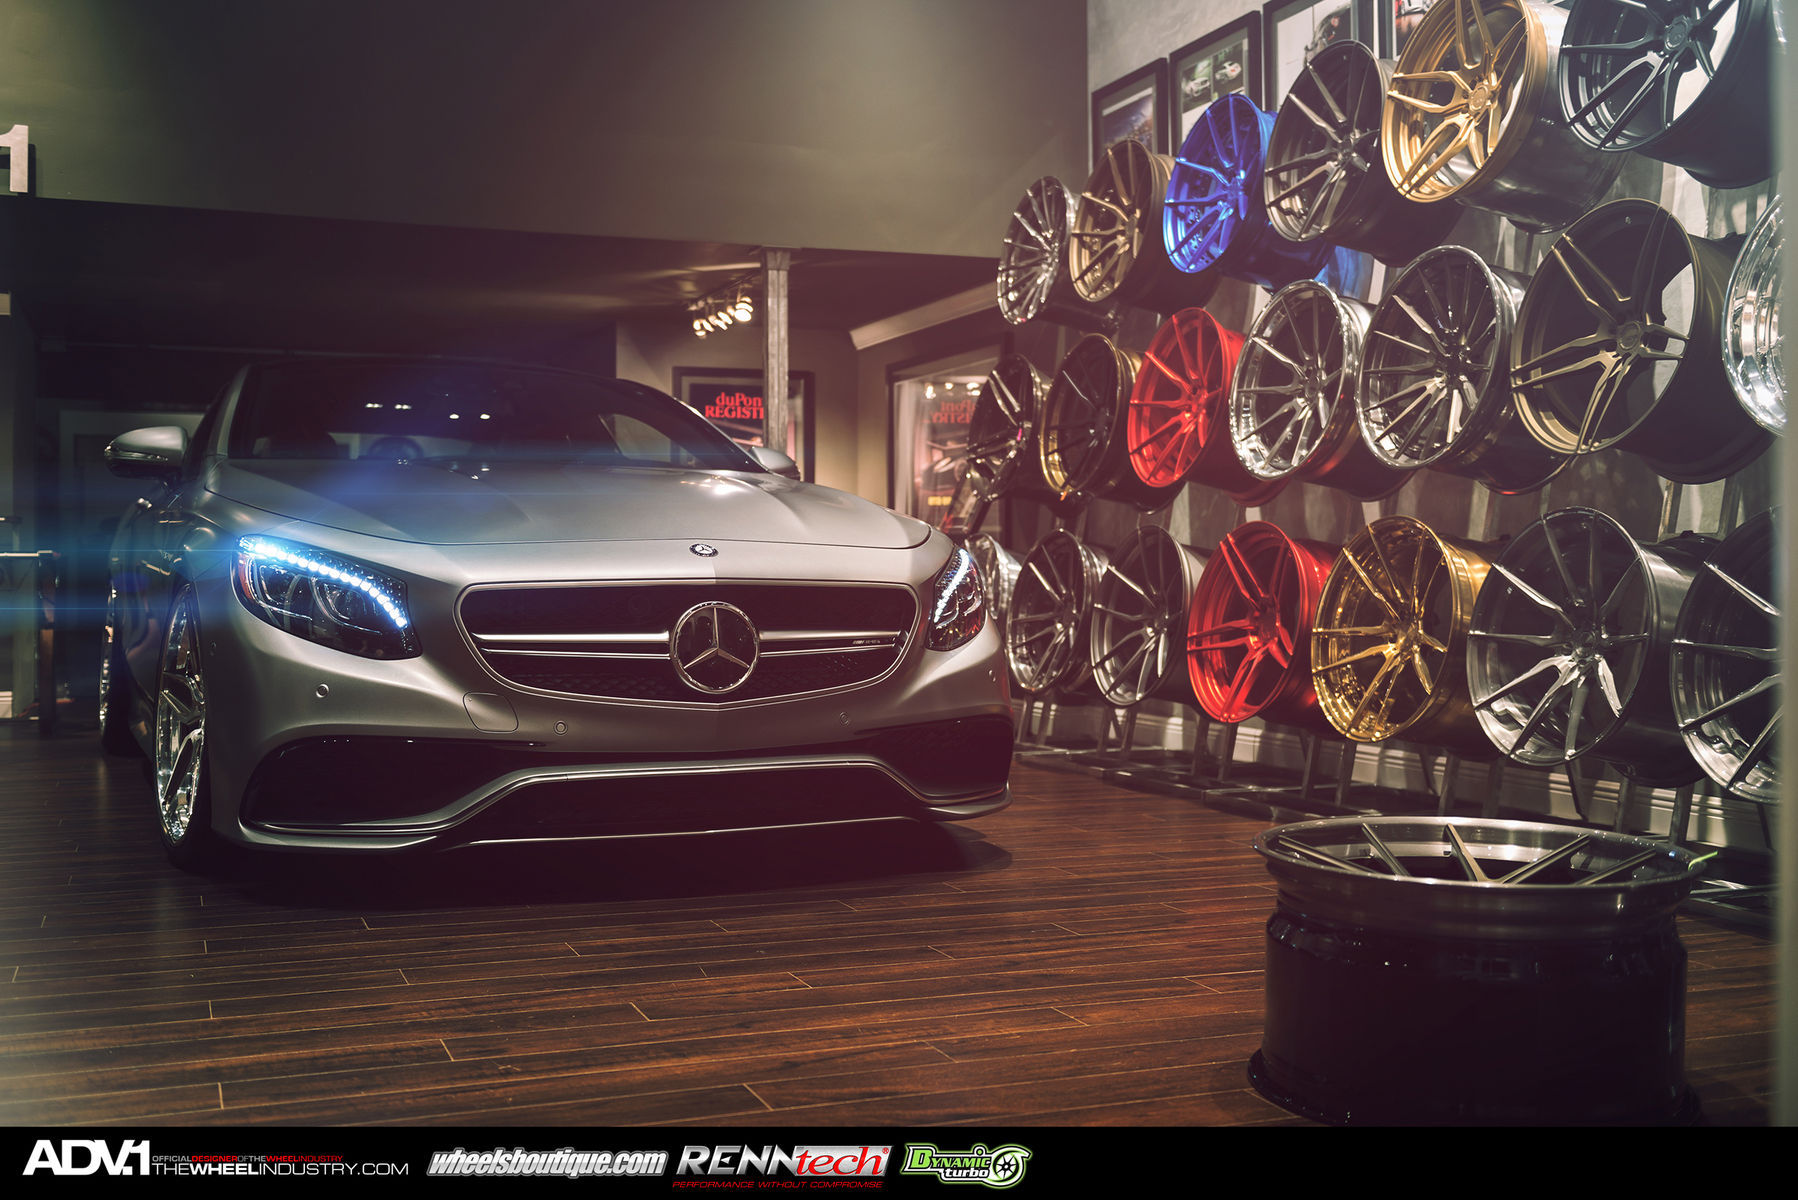 2015 Mercedes-Benz S-Class | Mercedes S63 AMG Coupe